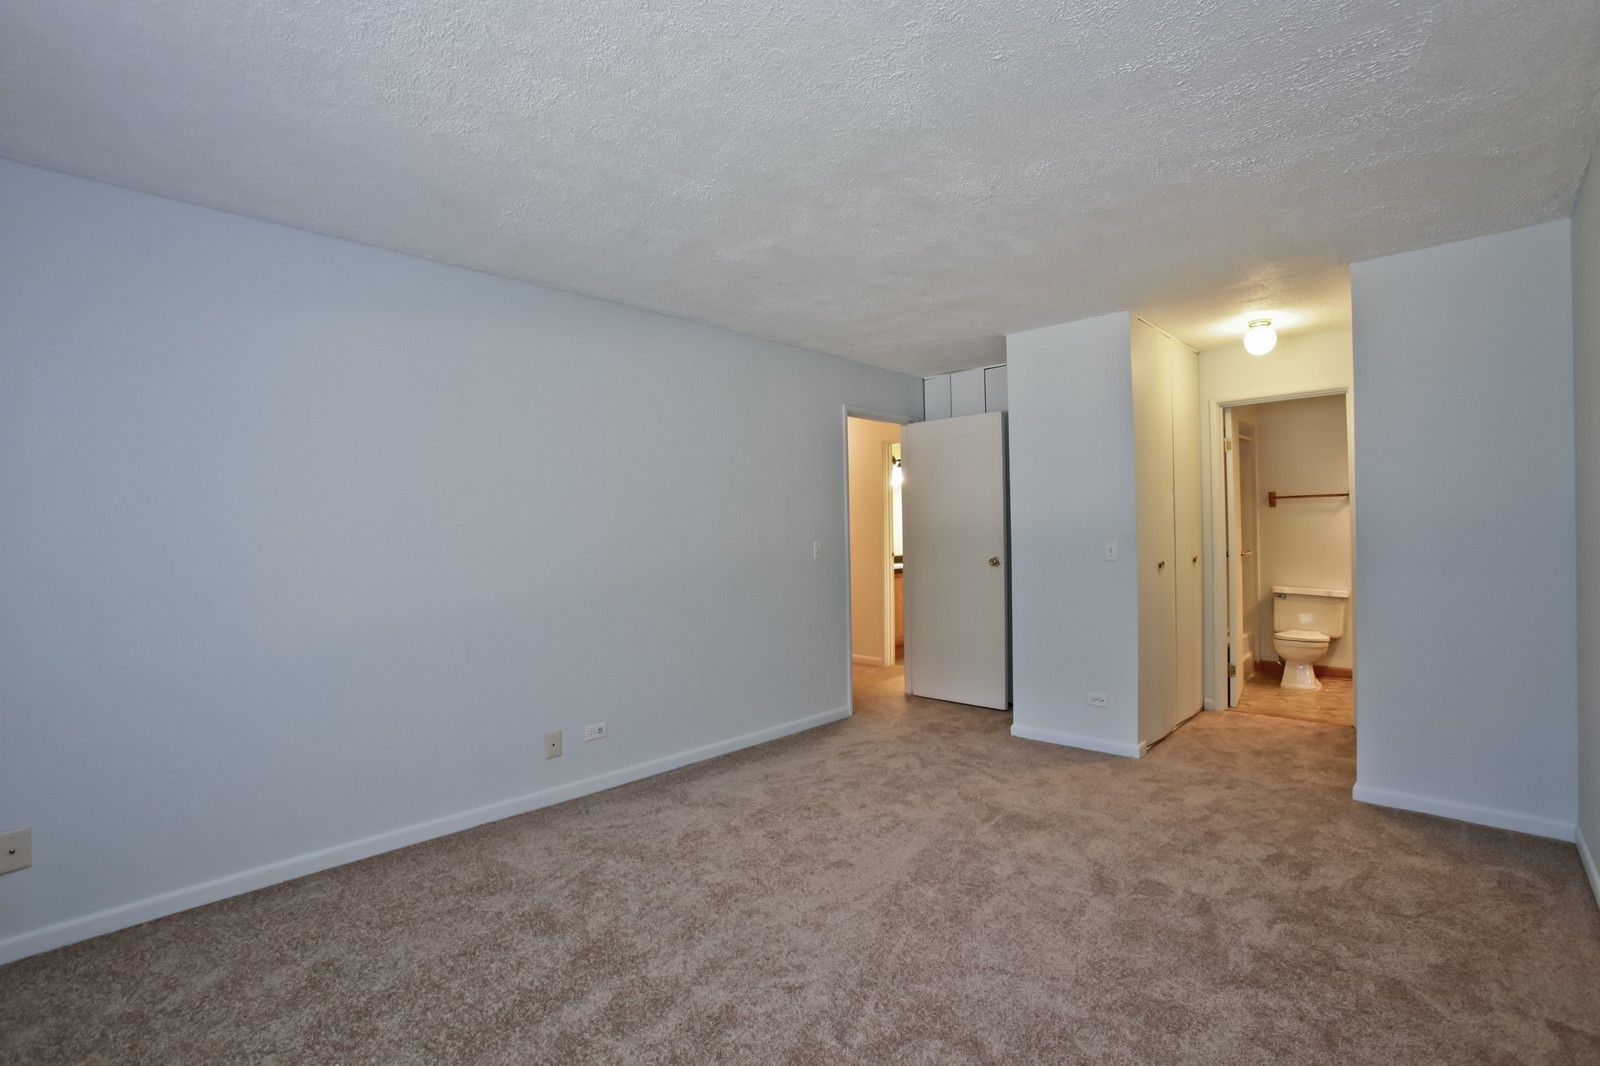 Real Estate Photography - 2811 Hobson Rd, Unit 3, Woodridge, IL, 60517 - Master Bedroom